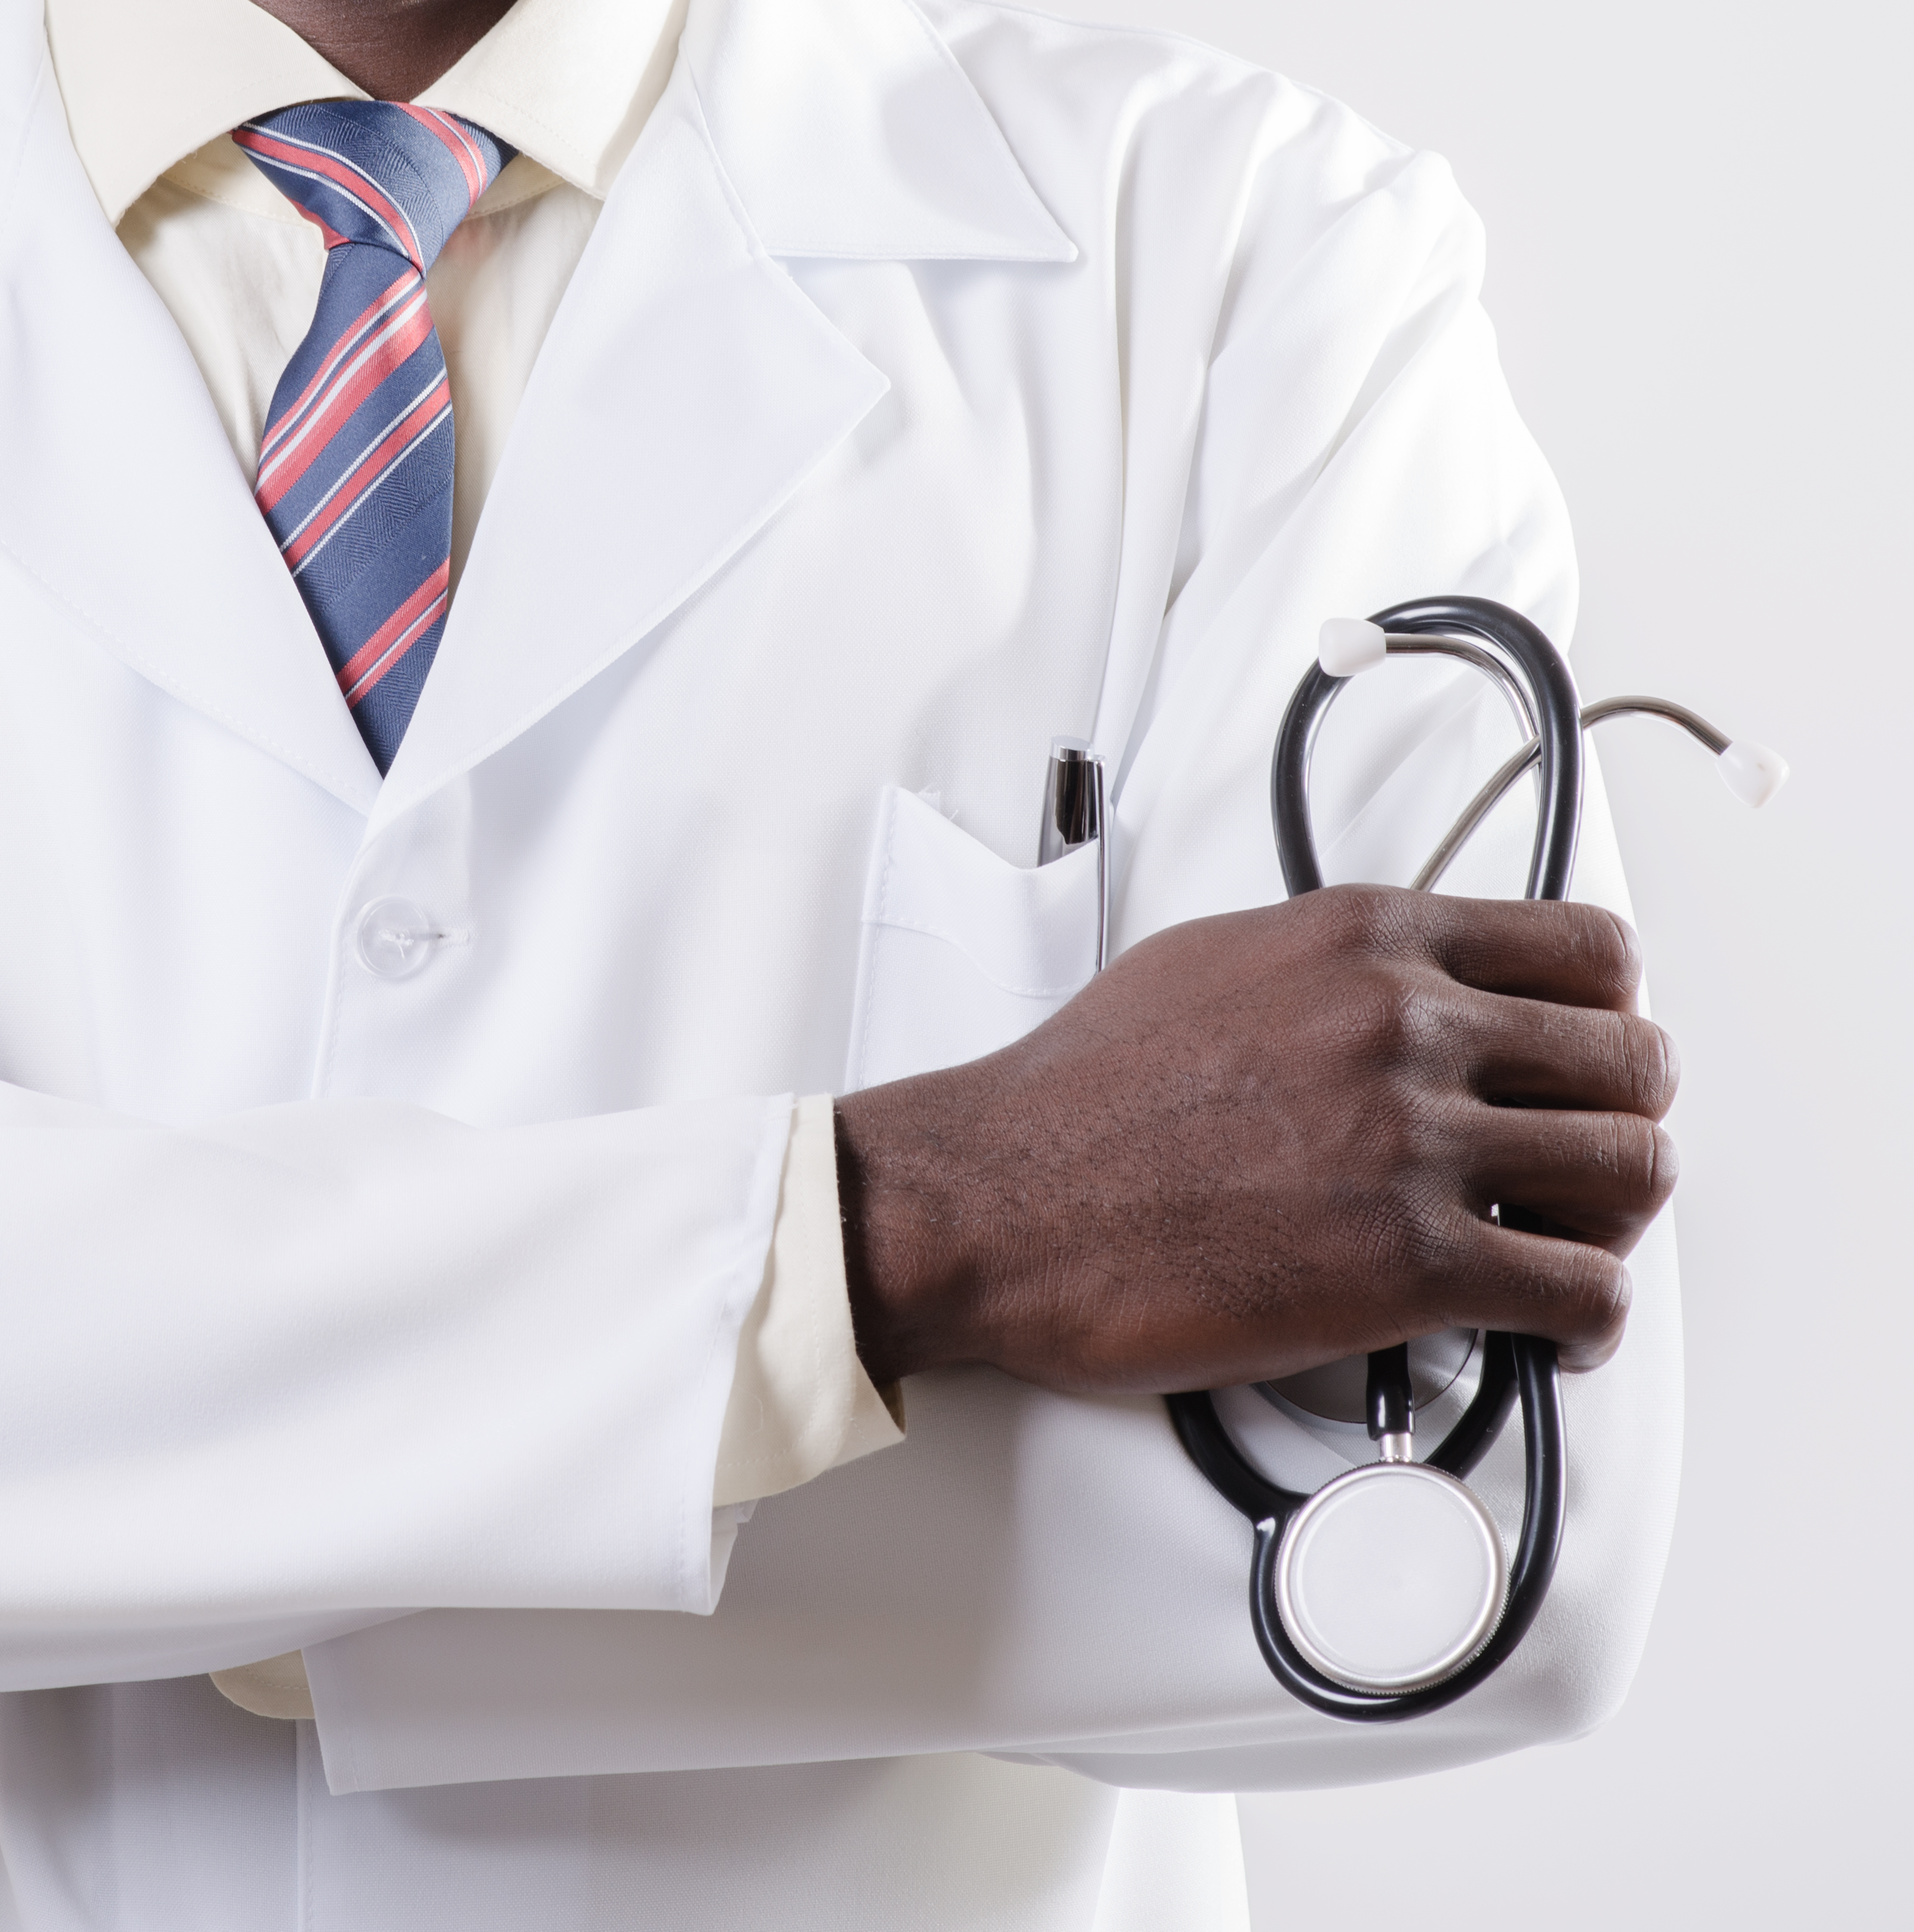 essay about profession doctor